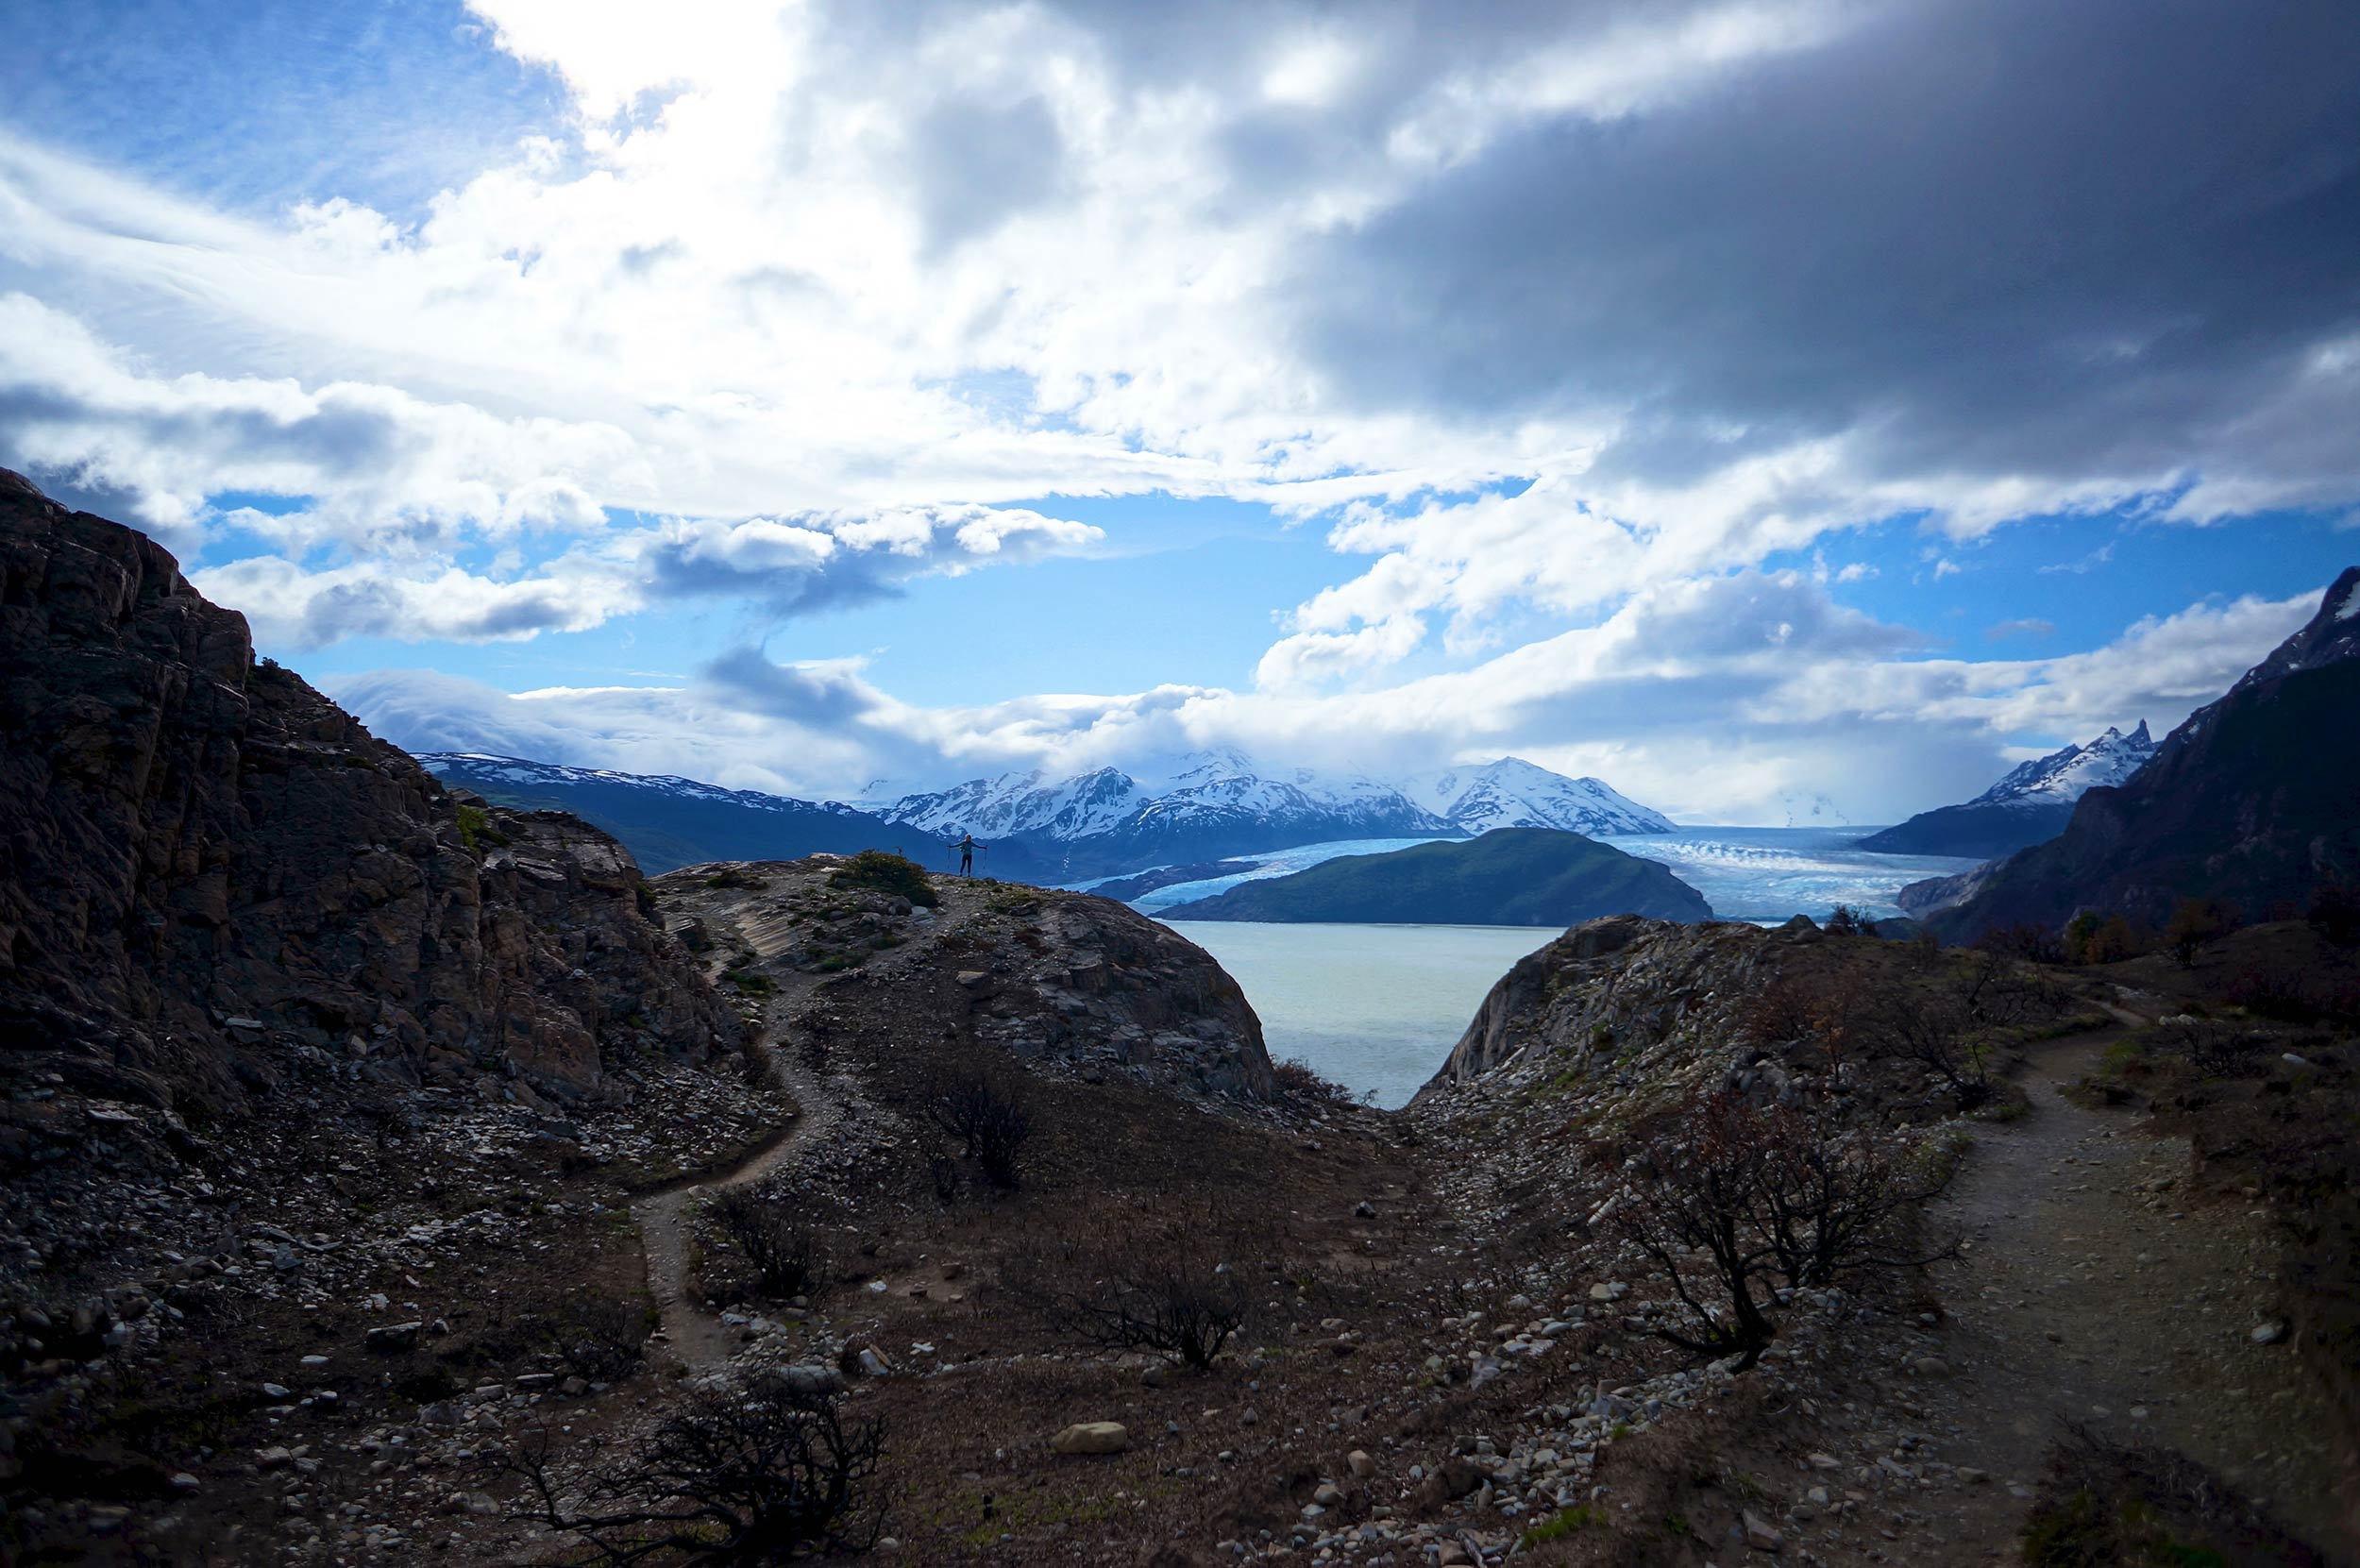 torres_del_paine_w_trek_candice_on_trail_glaciers.jpg